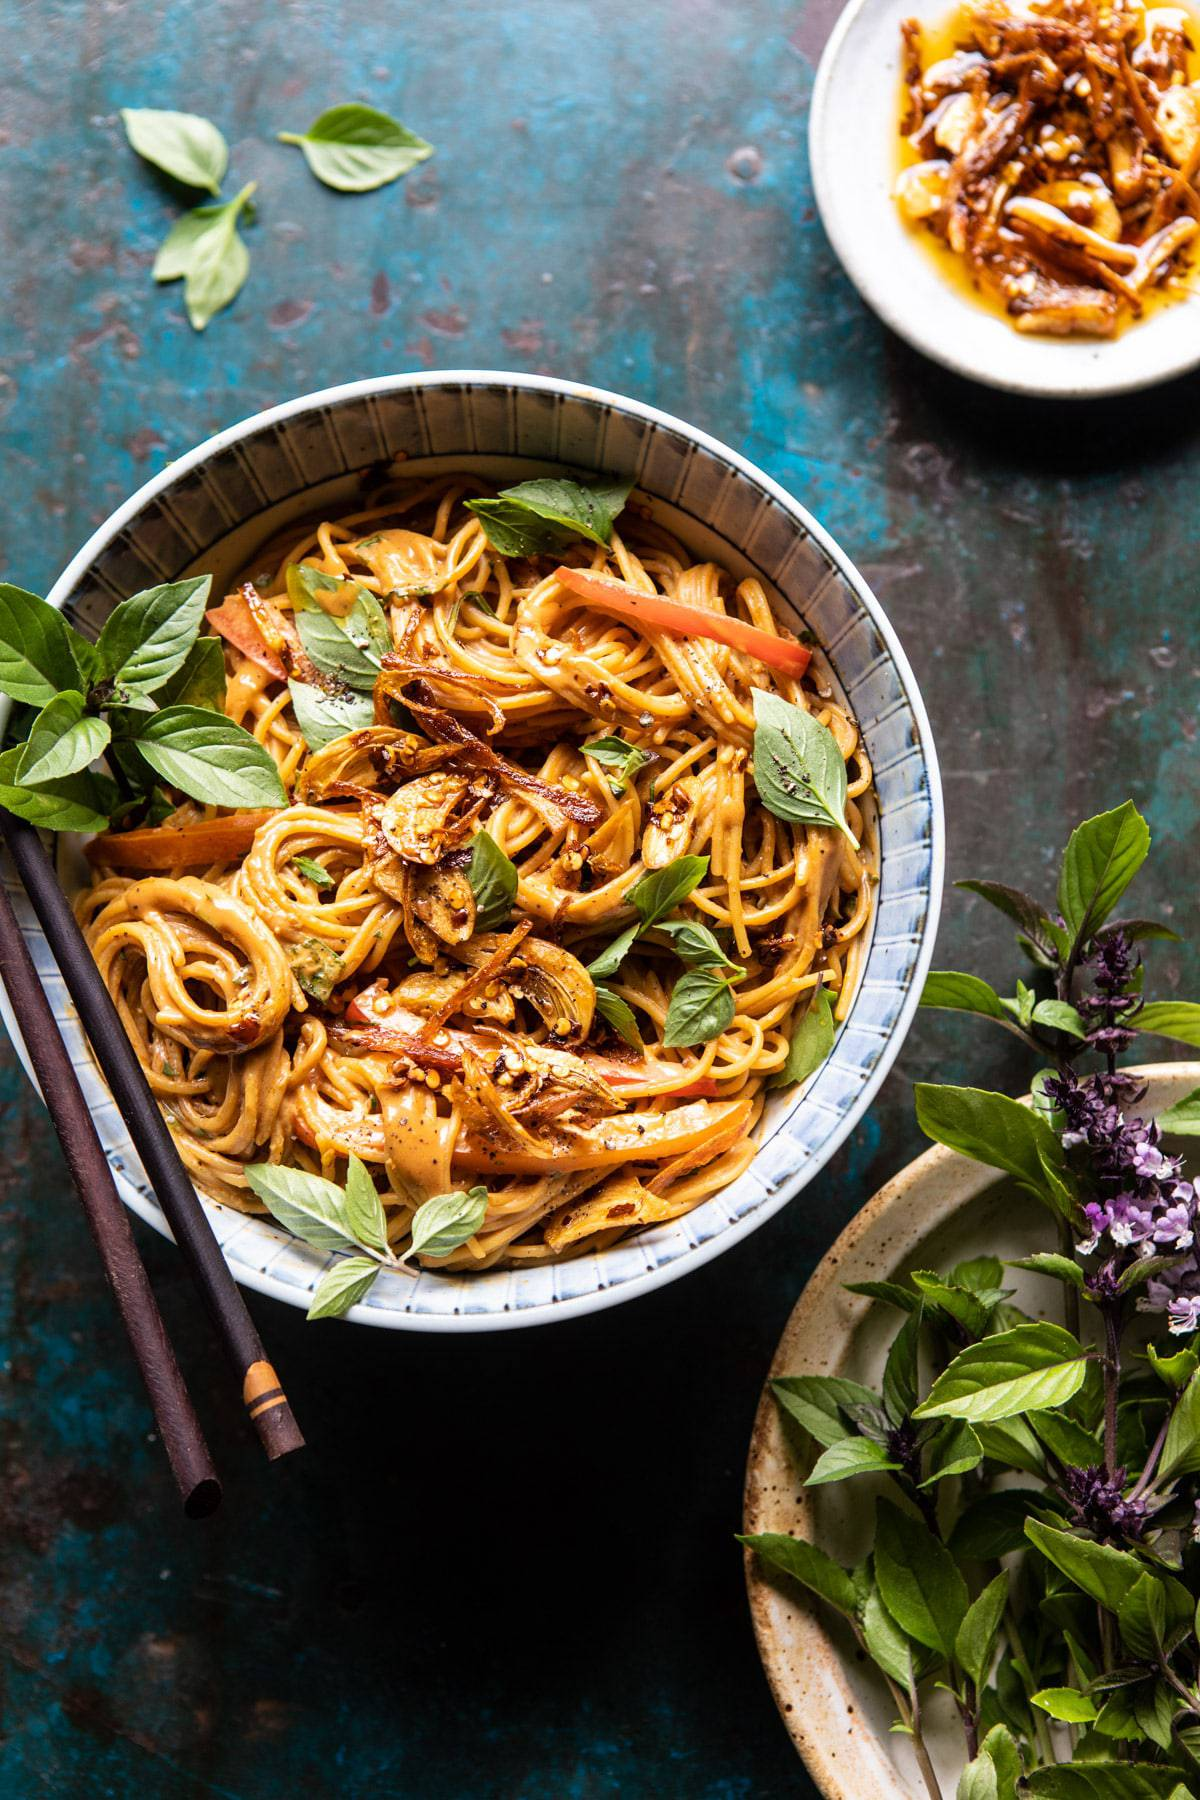 Spicy Peanut Noodles with Chili Garlic Oil